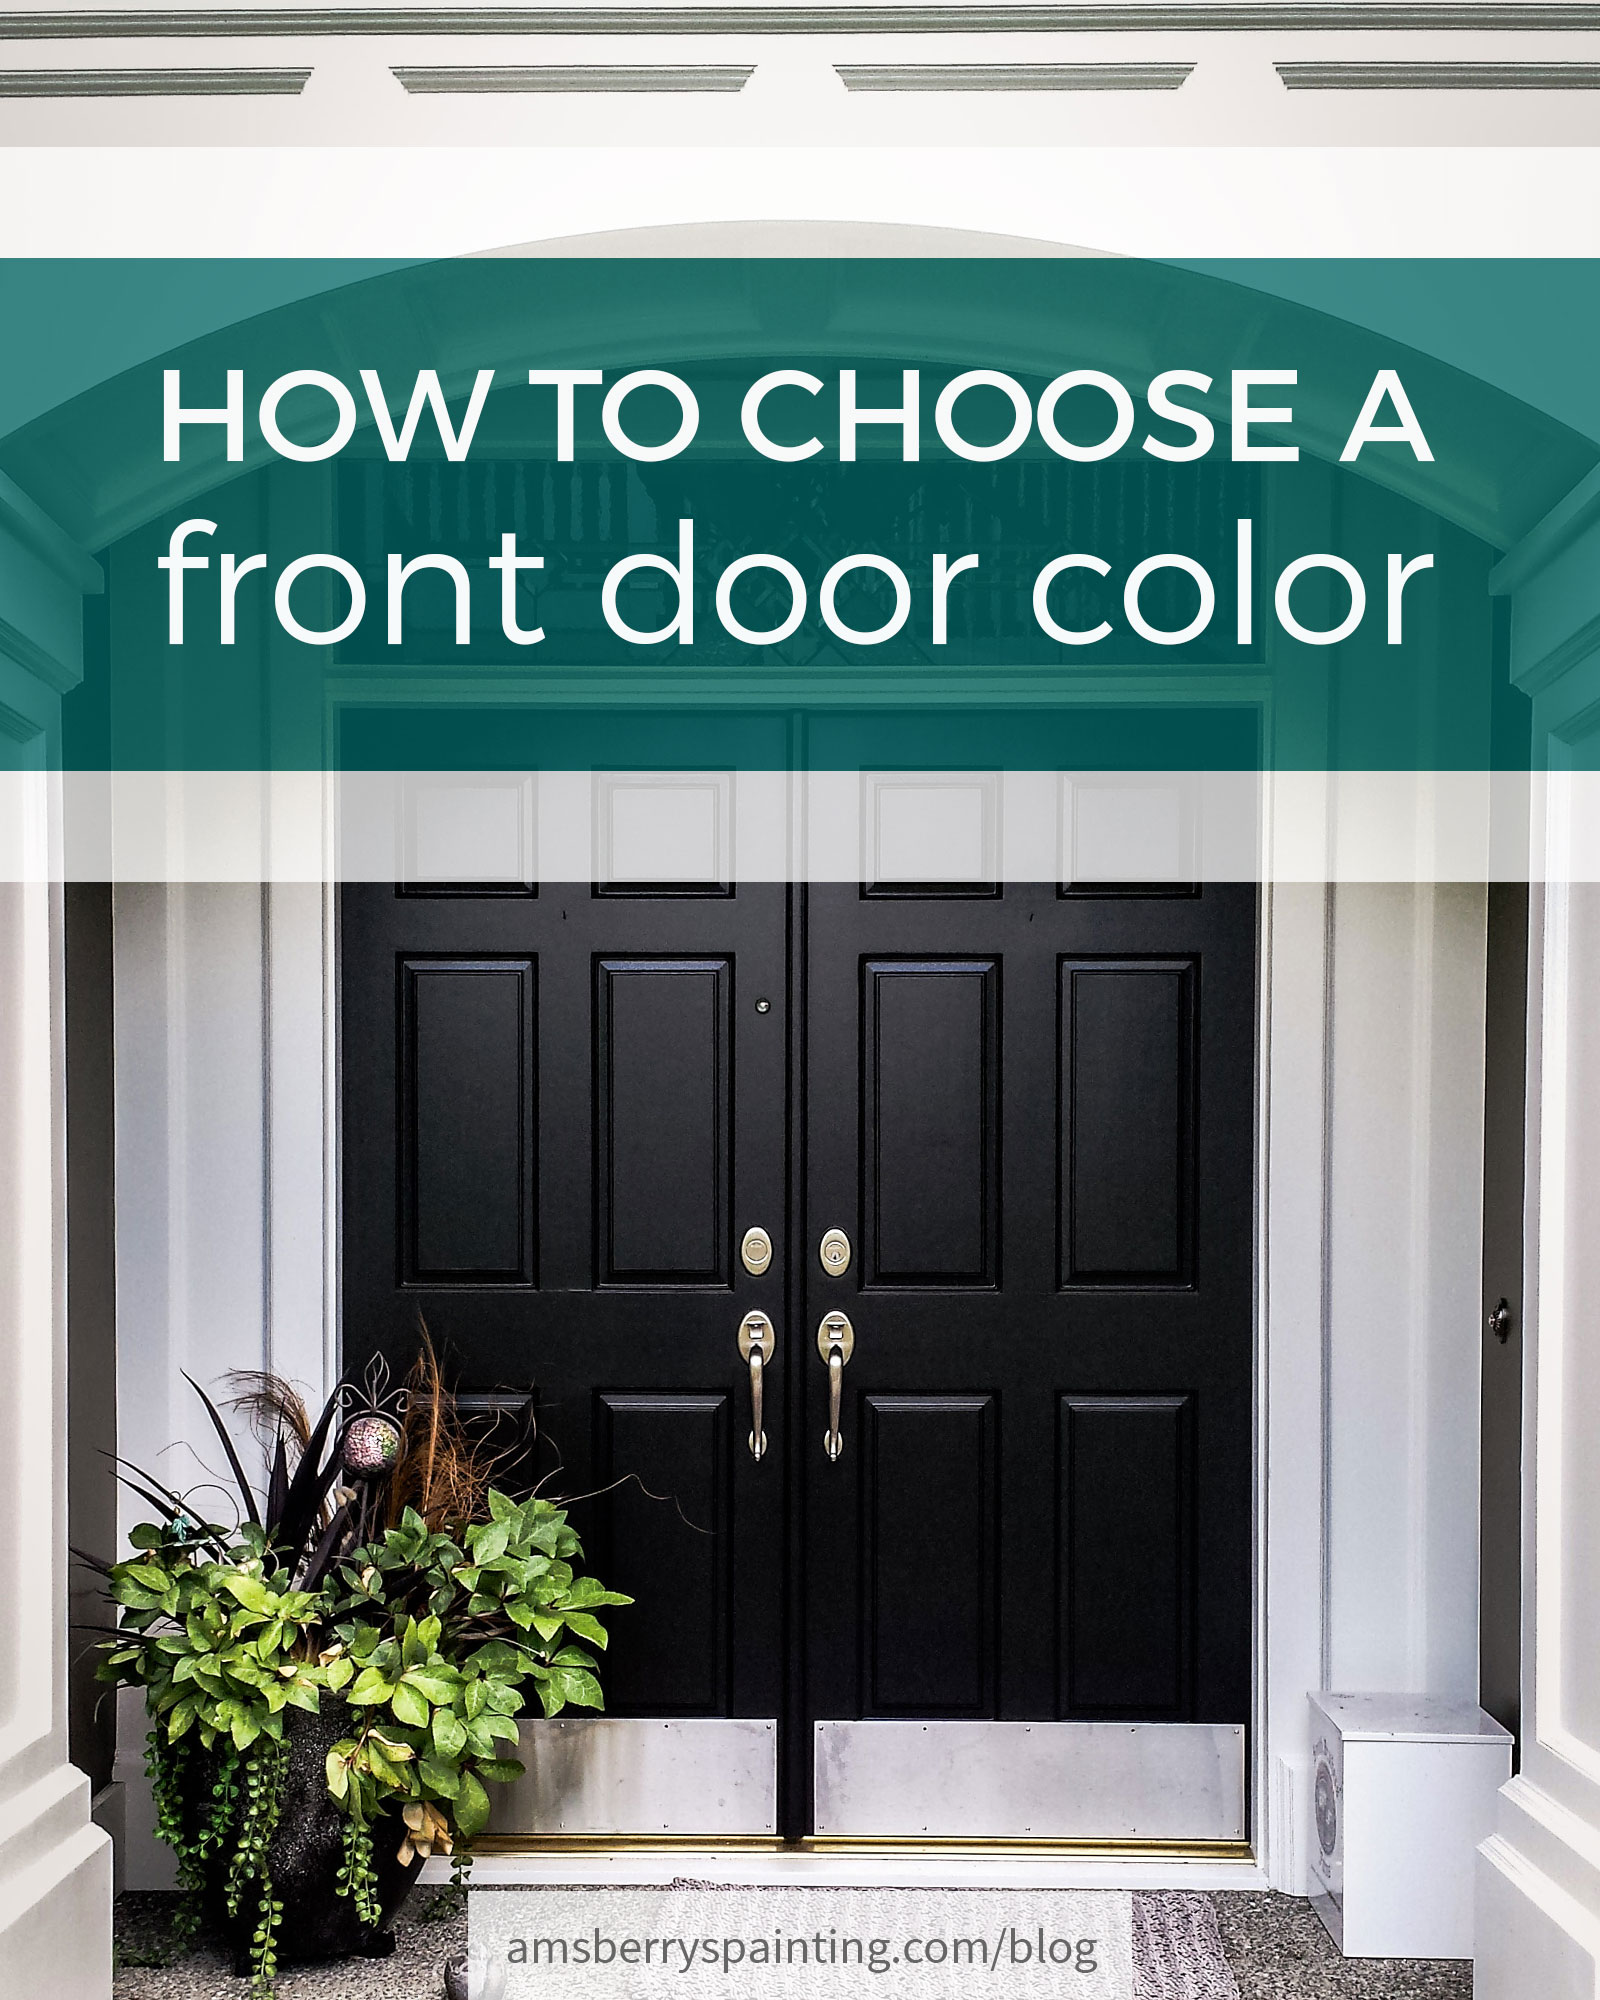 06 Feb How To Choose A Front Door Color